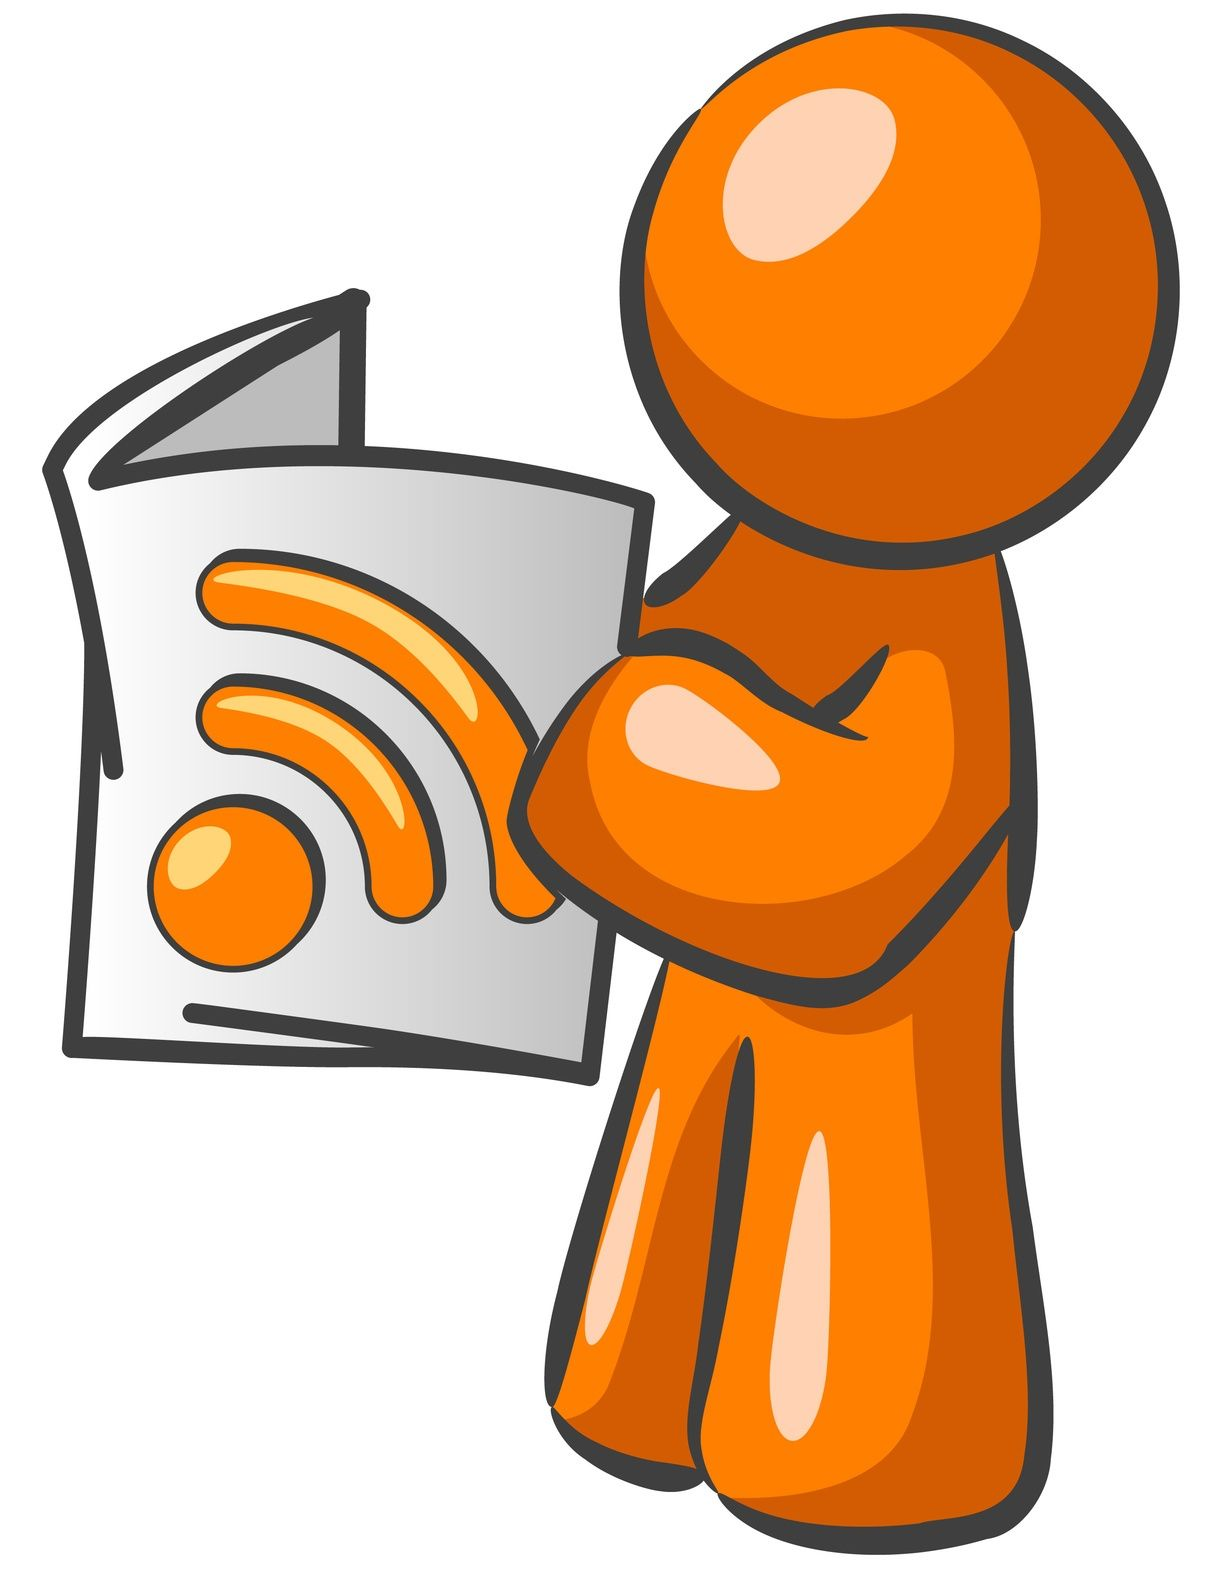 Rss Feeds  Top 25 Features For Users